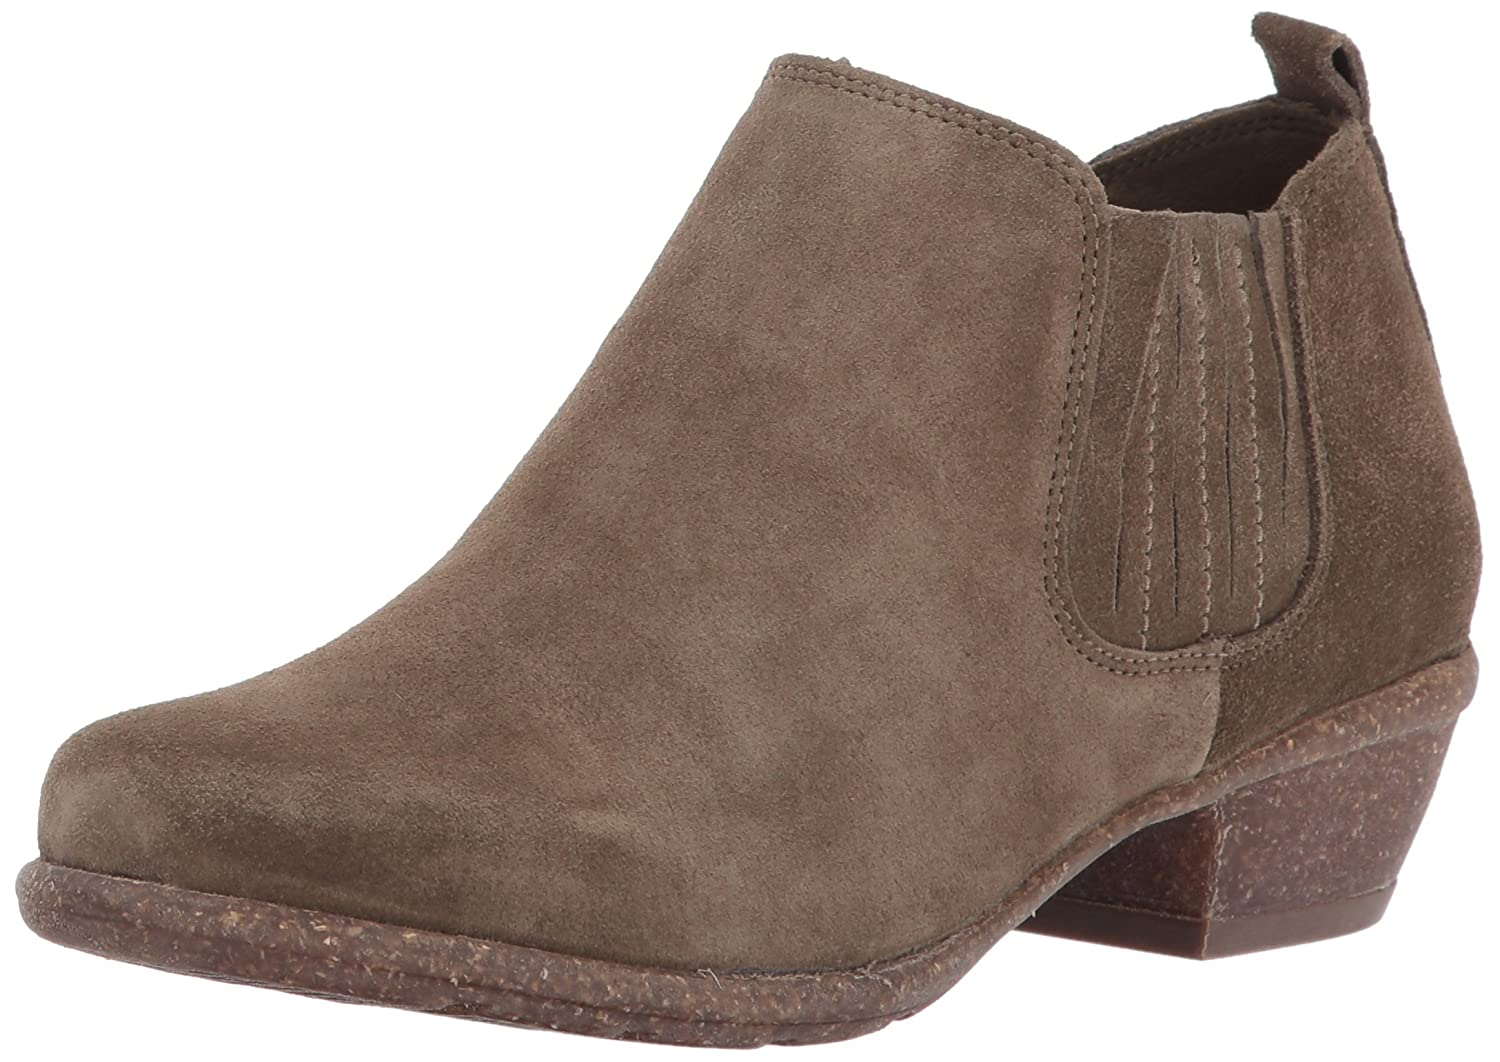 CLARKS Women's Wilrose Jade Ankle Bootie B01NBJUCUG 7 B(M) US|Olive Suede